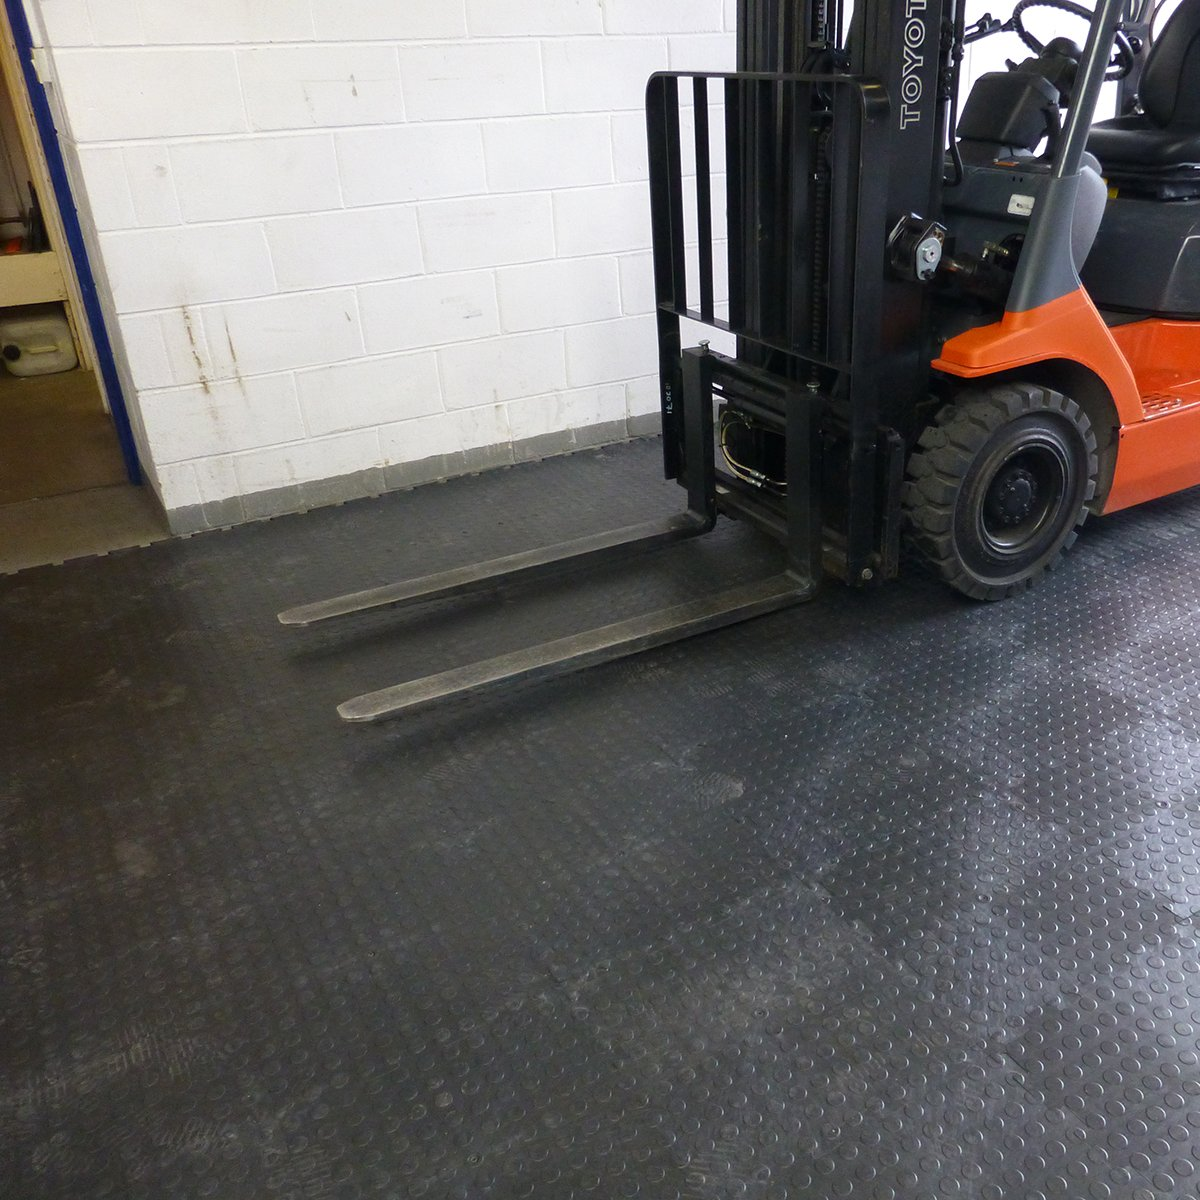 Garage floor tiles amazon image collections tile flooring design interlocking vinyl floor tiles flooring studded surface 495 x interlocking vinyl floor tiles flooring studded surface dailygadgetfo Image collections